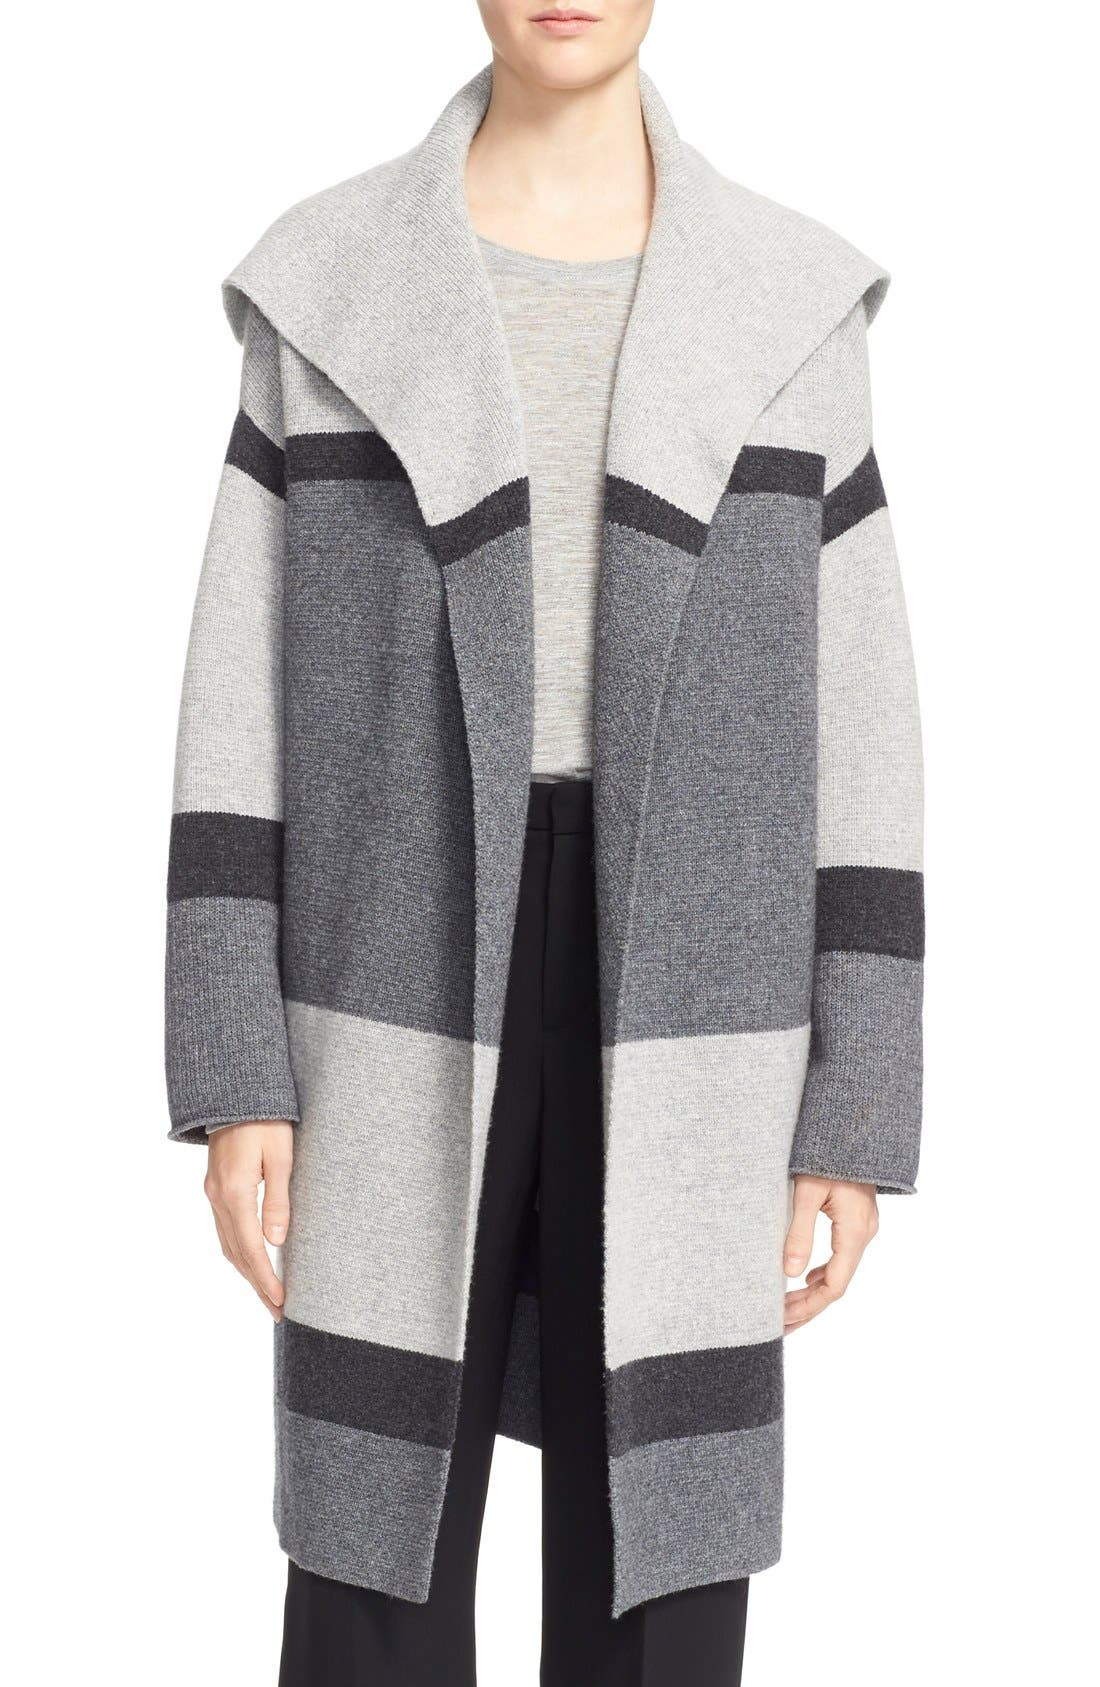 Alternate Image 1 Selected - Vince Colorblock Wool & Cashmere Knit Car Coat